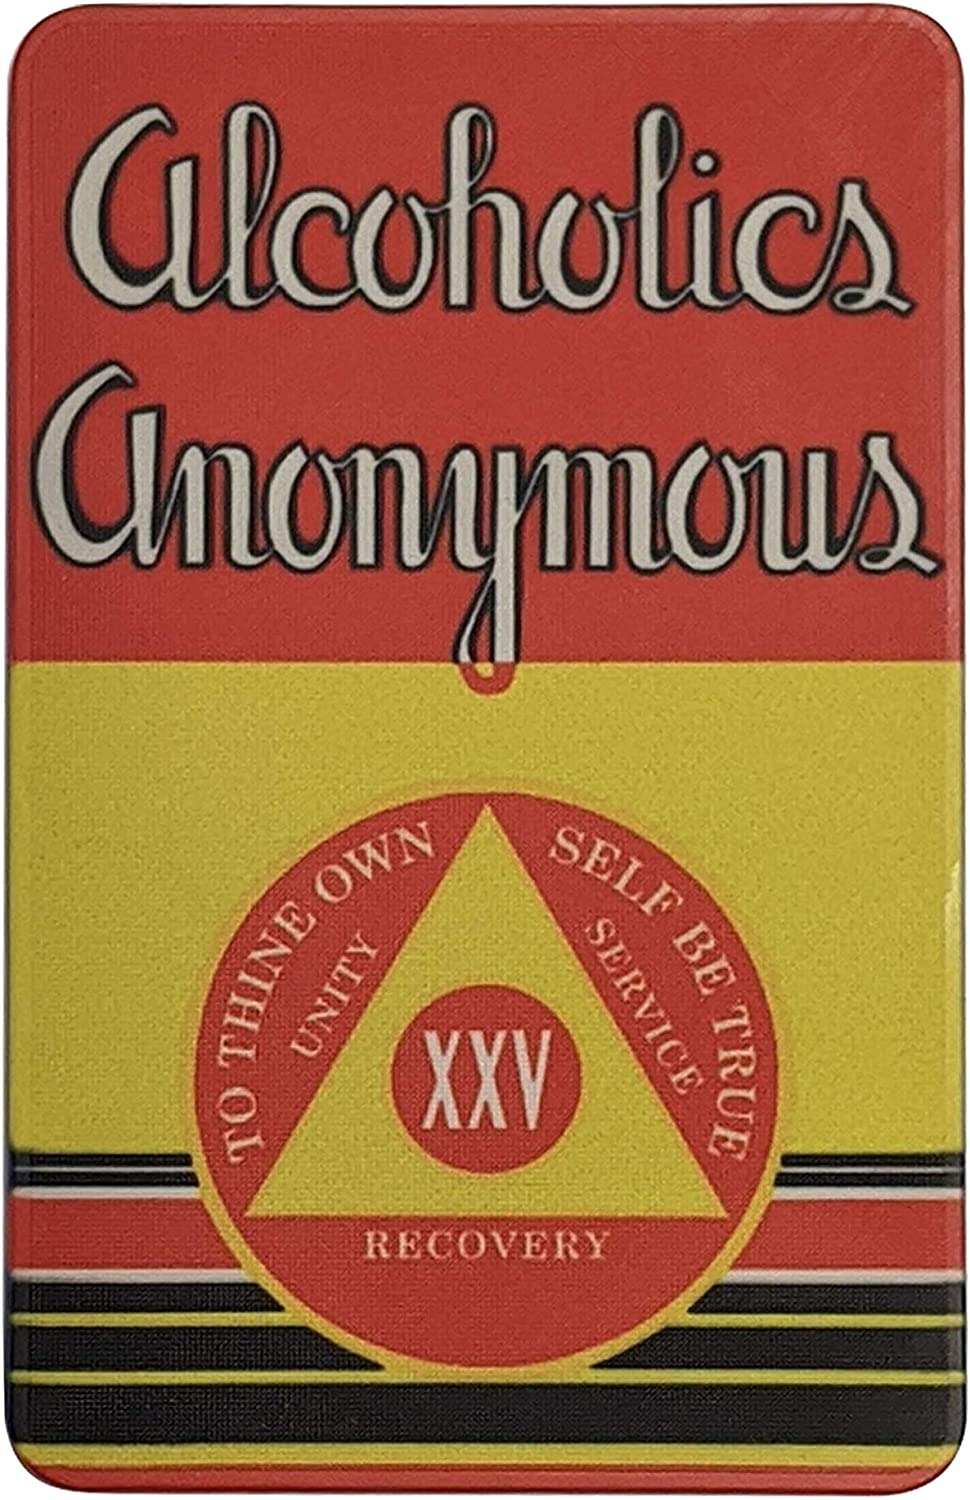 25 Year AA ChipFirst Edition Alcoholics Anonymous Big Book Sobriety Gift